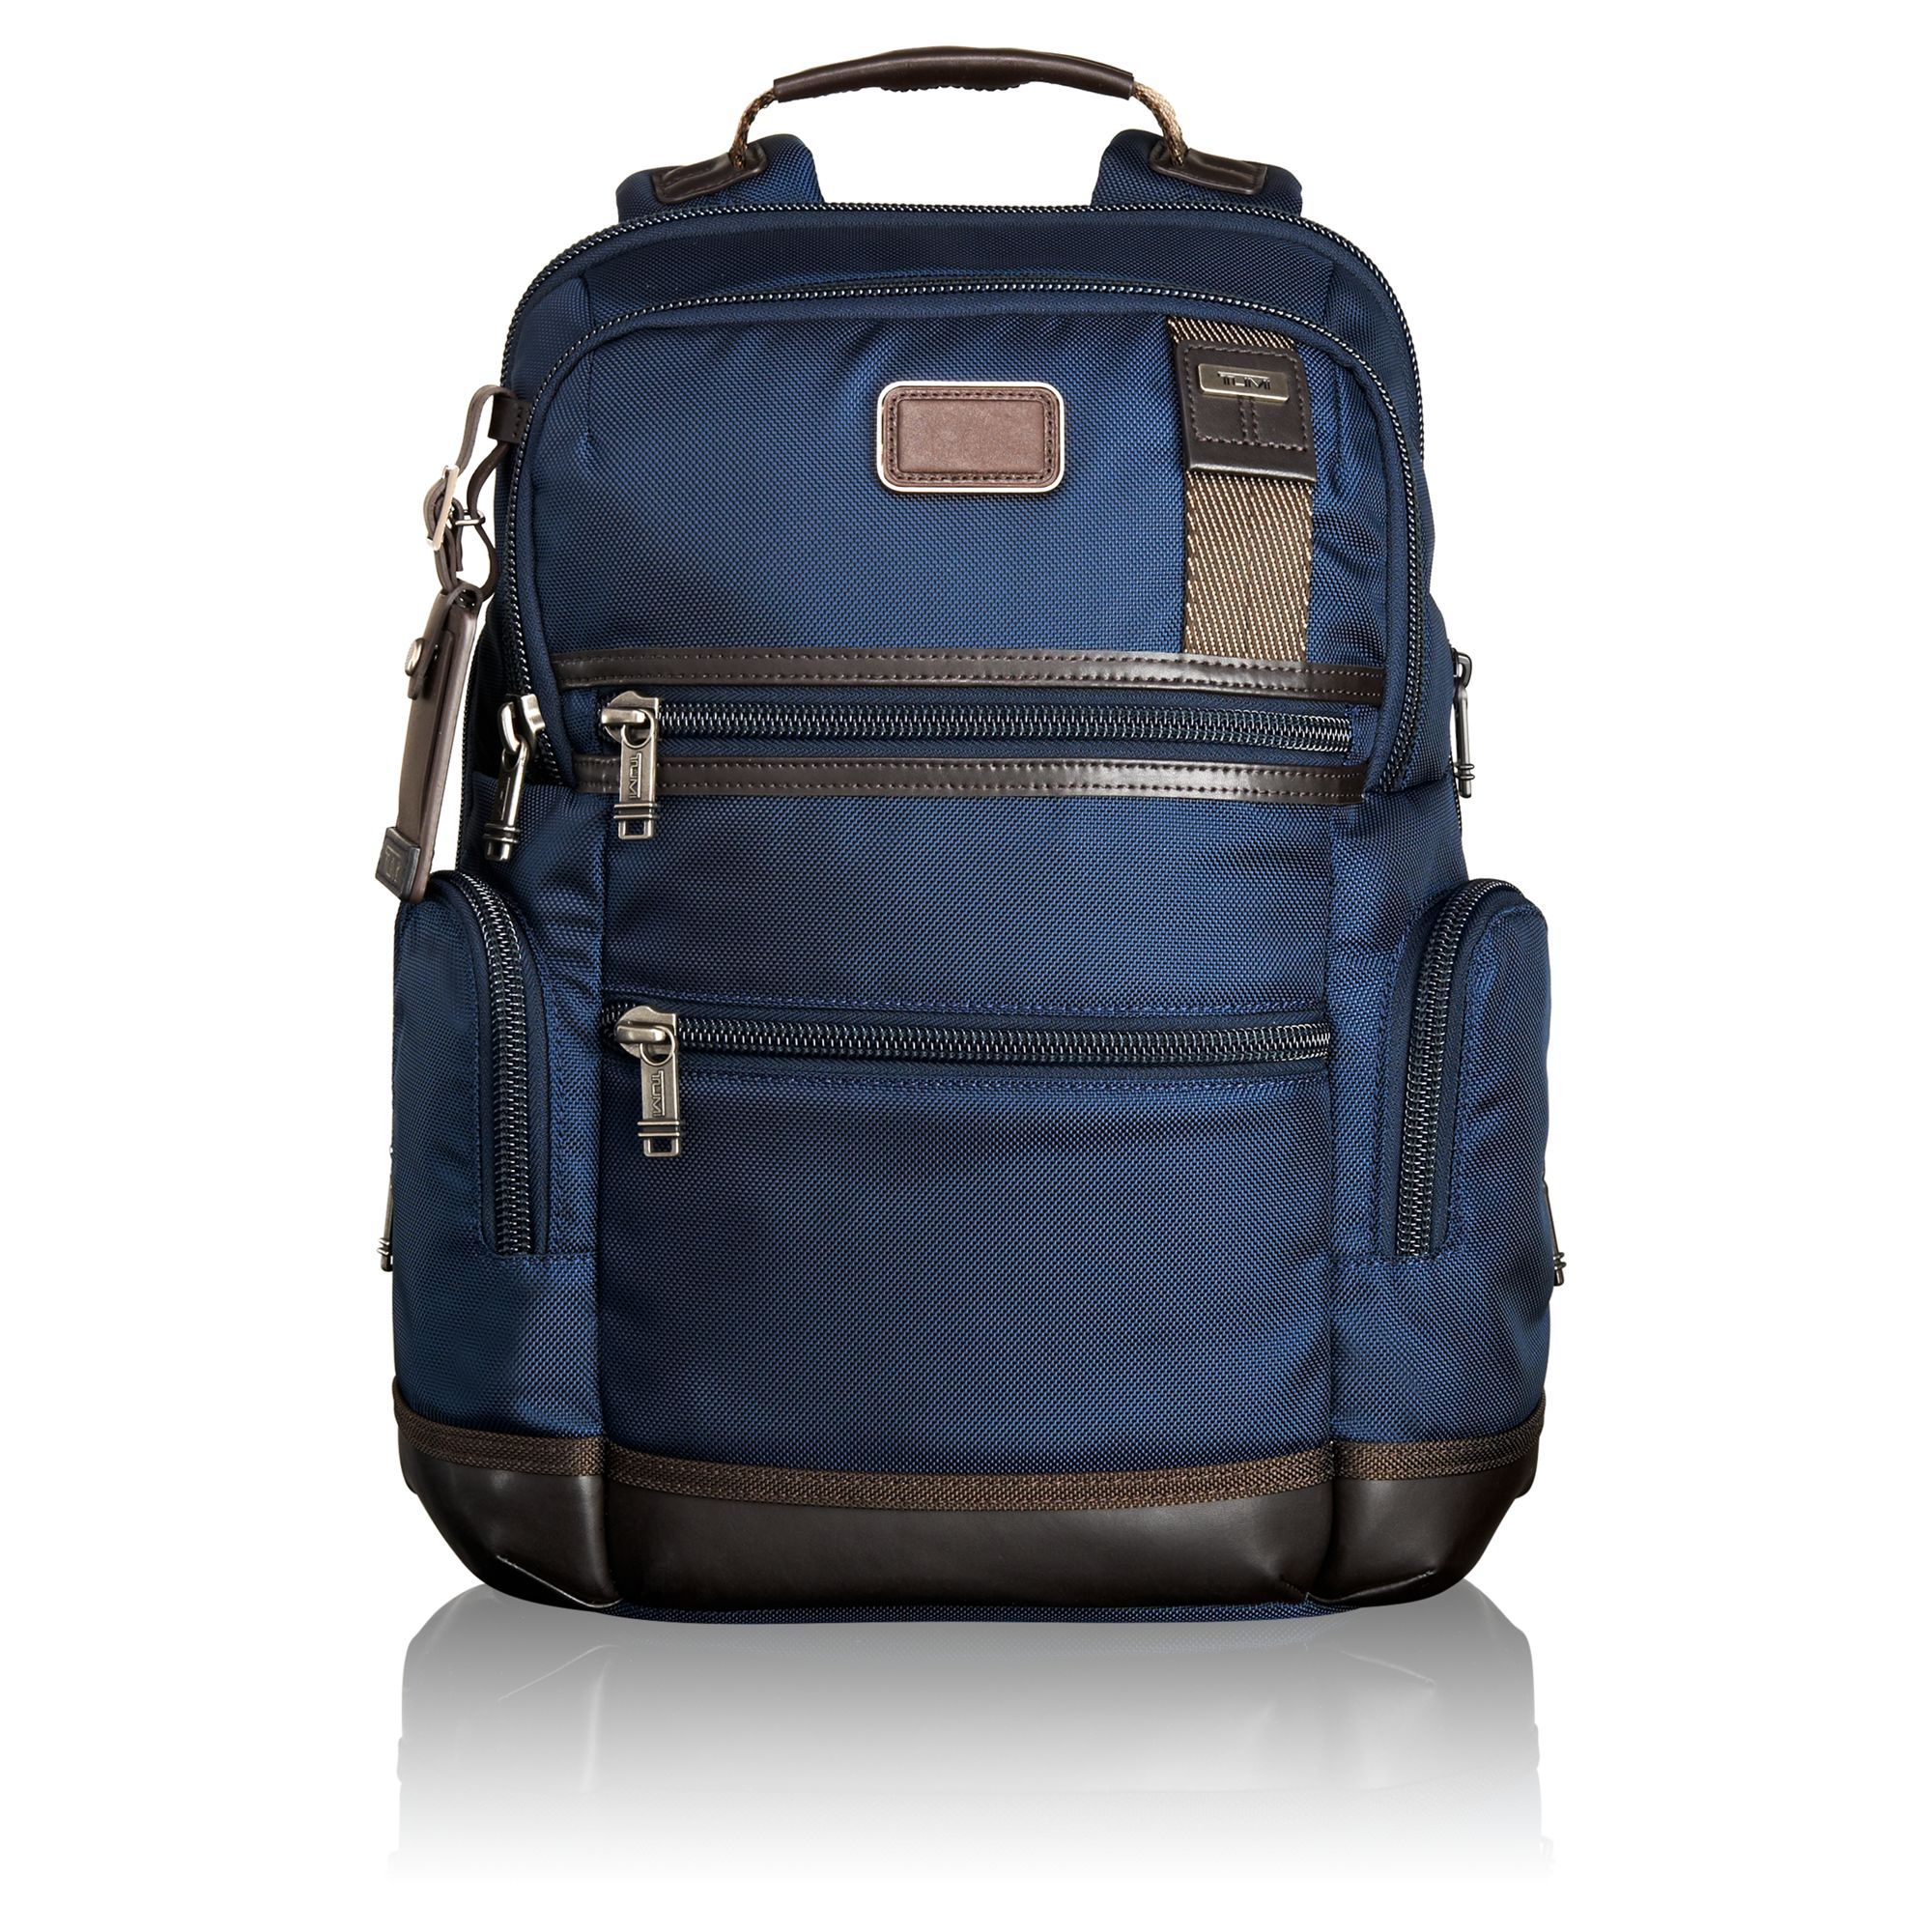 Elegant Tumi Alpha Bravo for Cool Travel Bag Ideas: Tumi Yuma Slim Brief | Tumi Alpha Bravo Spruce | Tumi Alpha Bravo